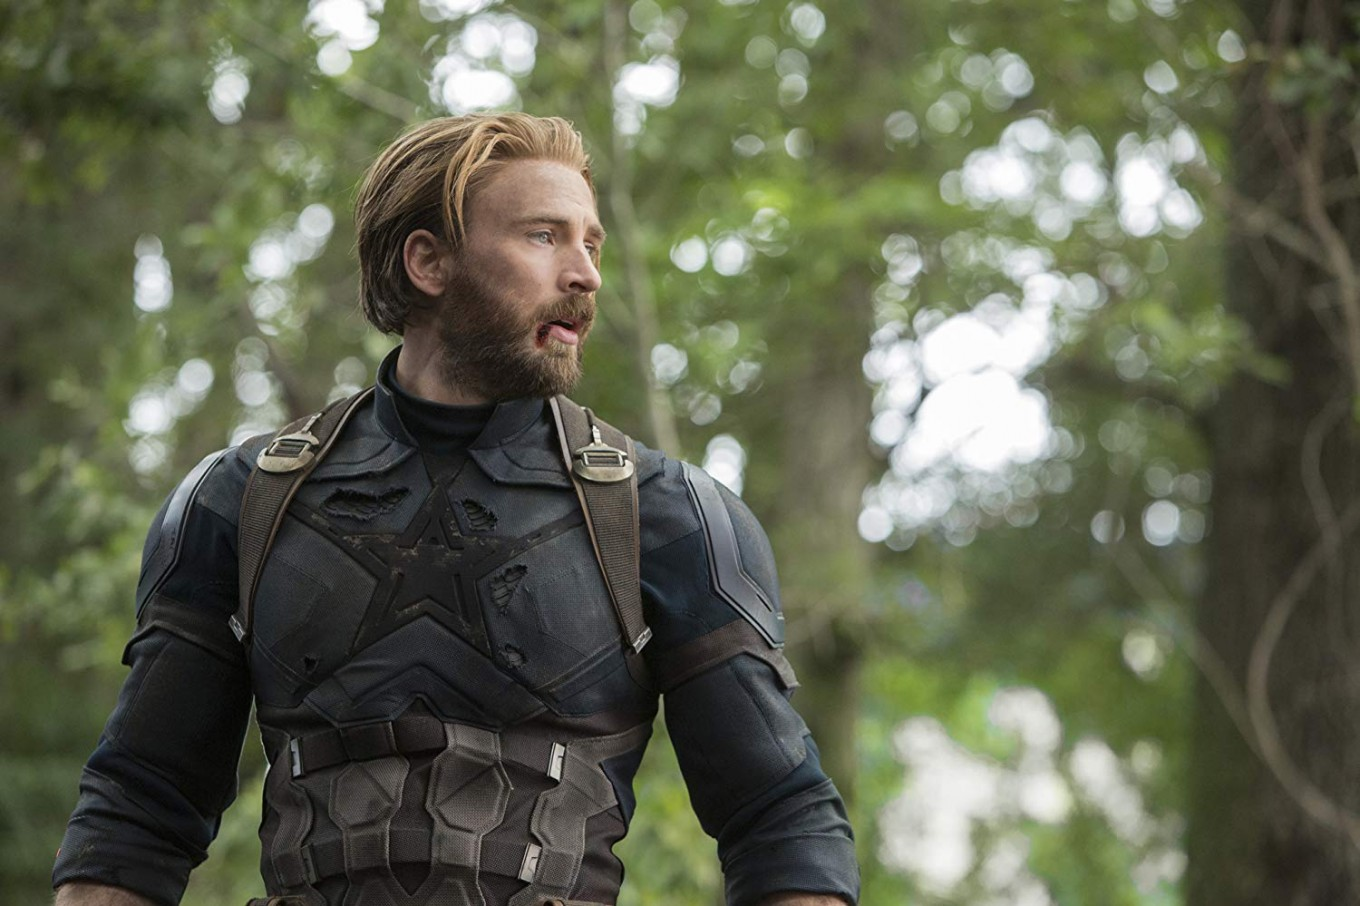 Chris Evans Not Done Yet As Captain America Avengers Director